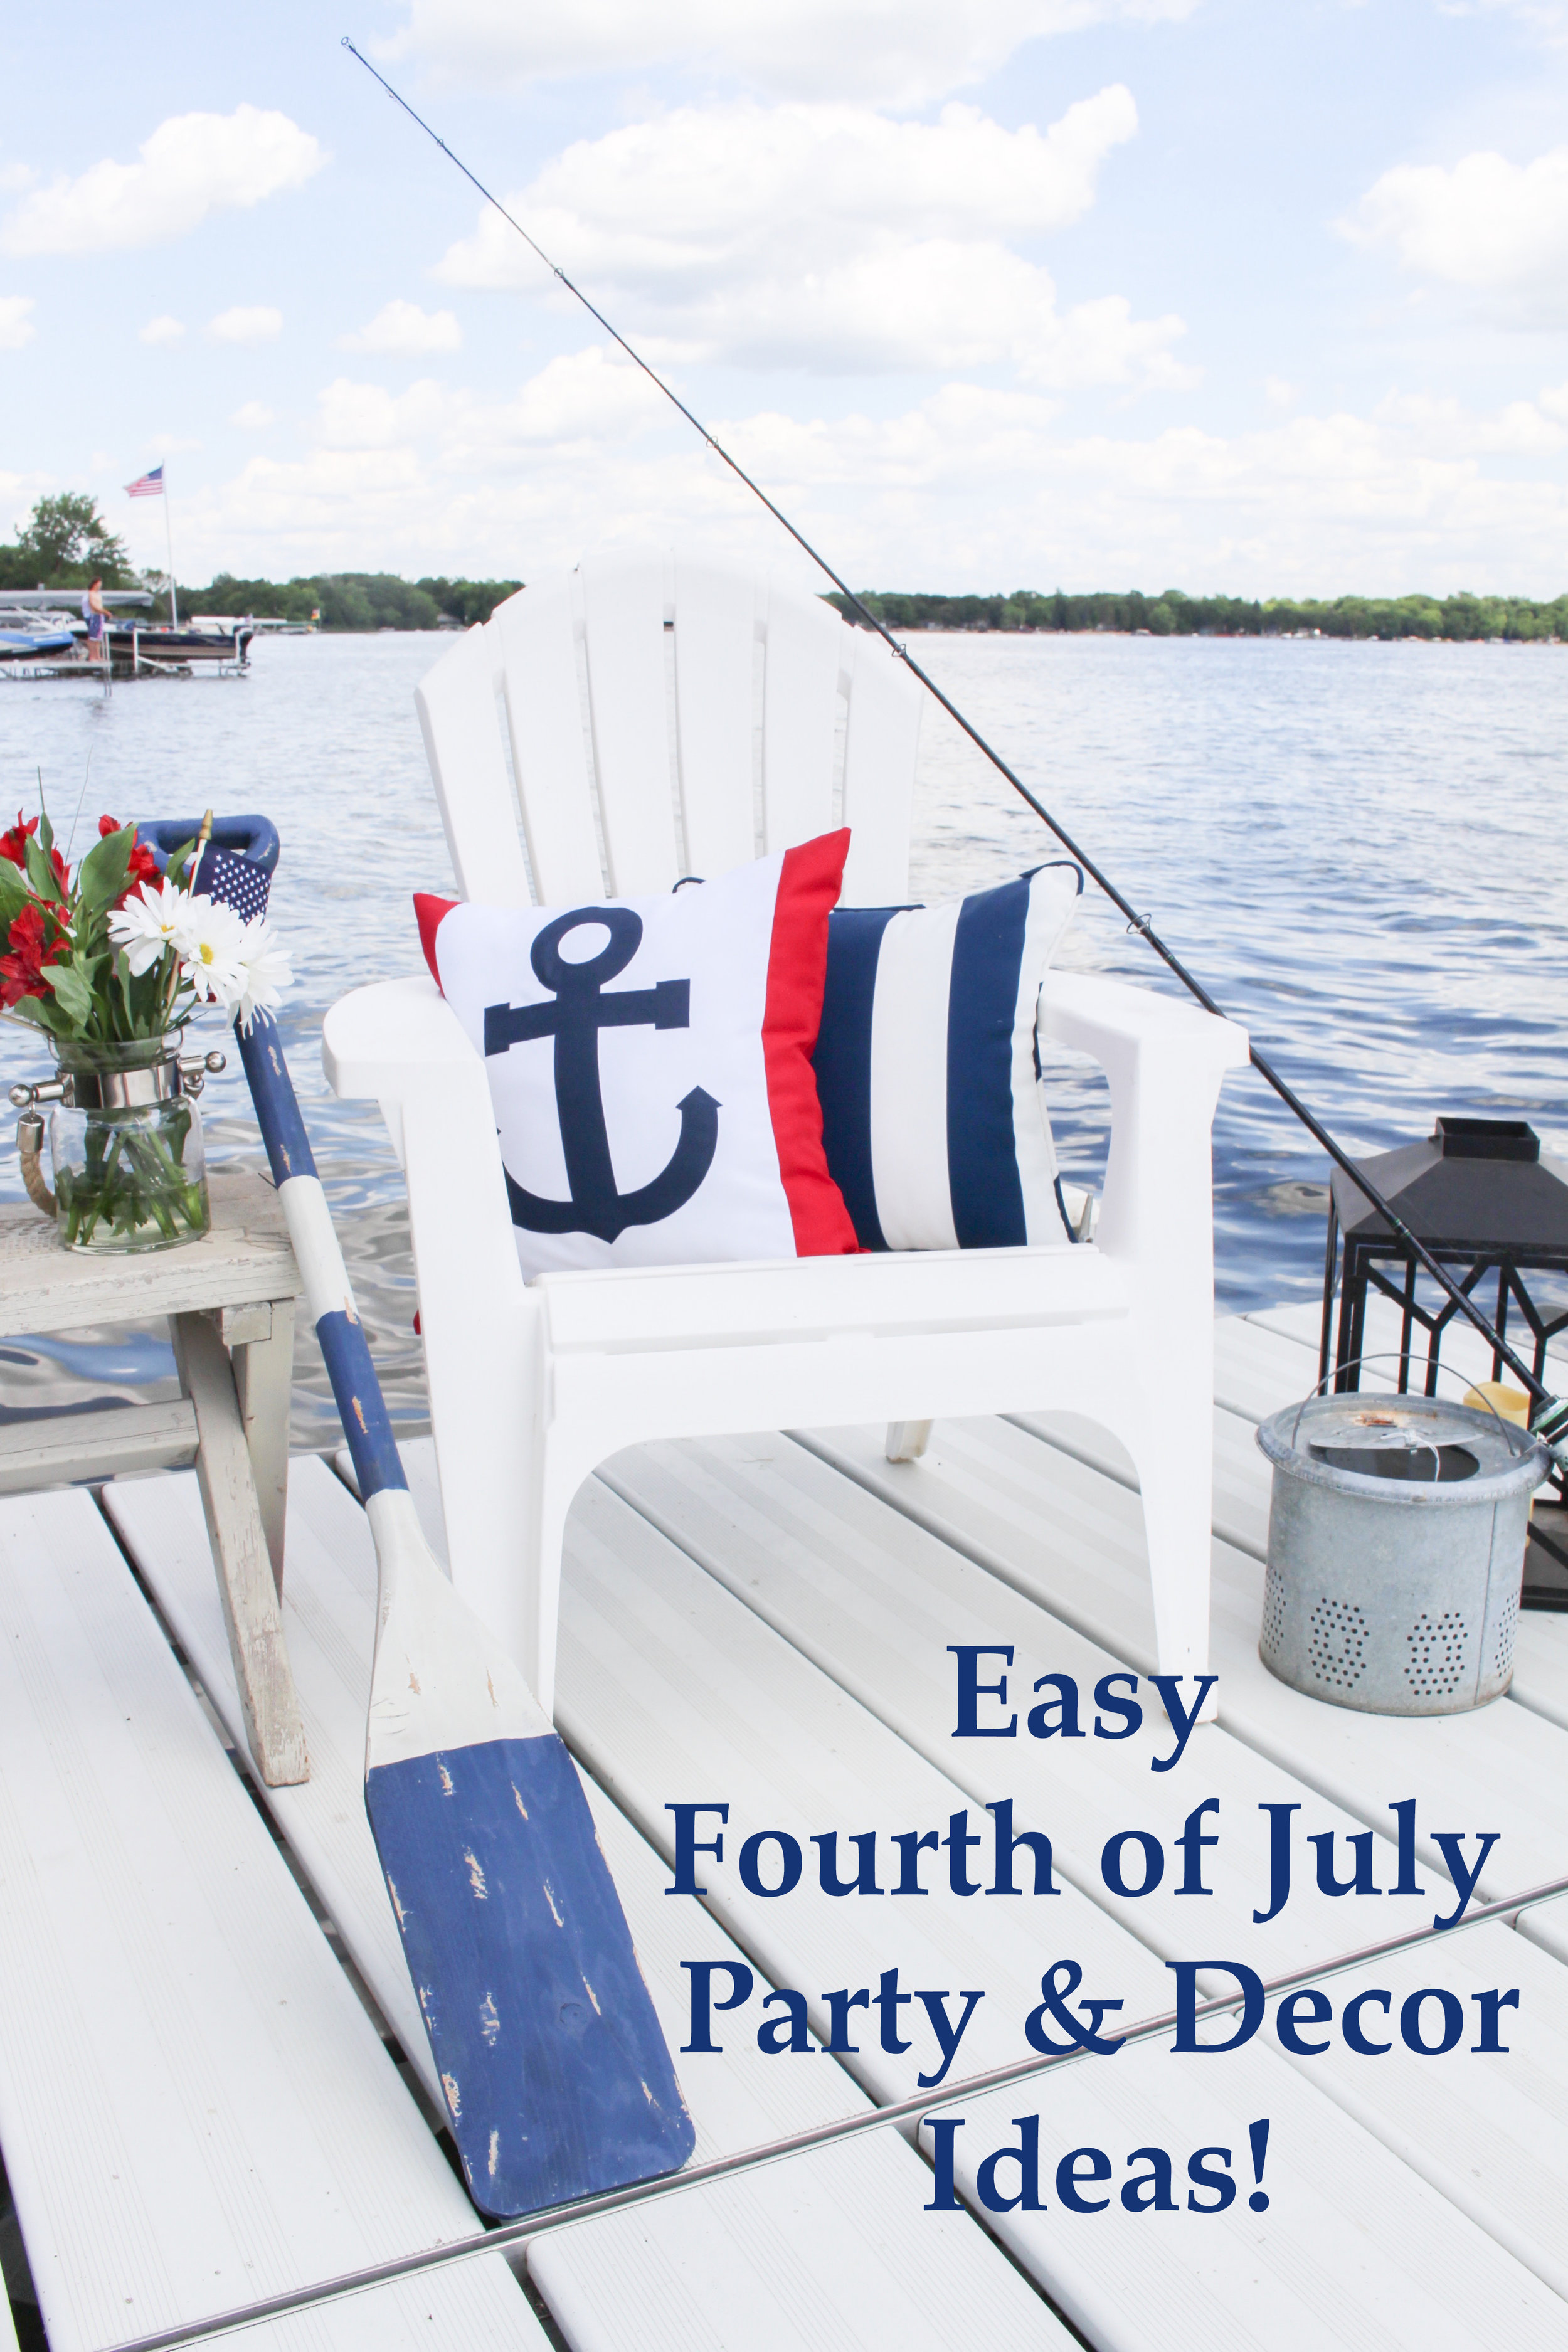 Easy Fourth of July Party & Decor Ideas! - Styled With Lace